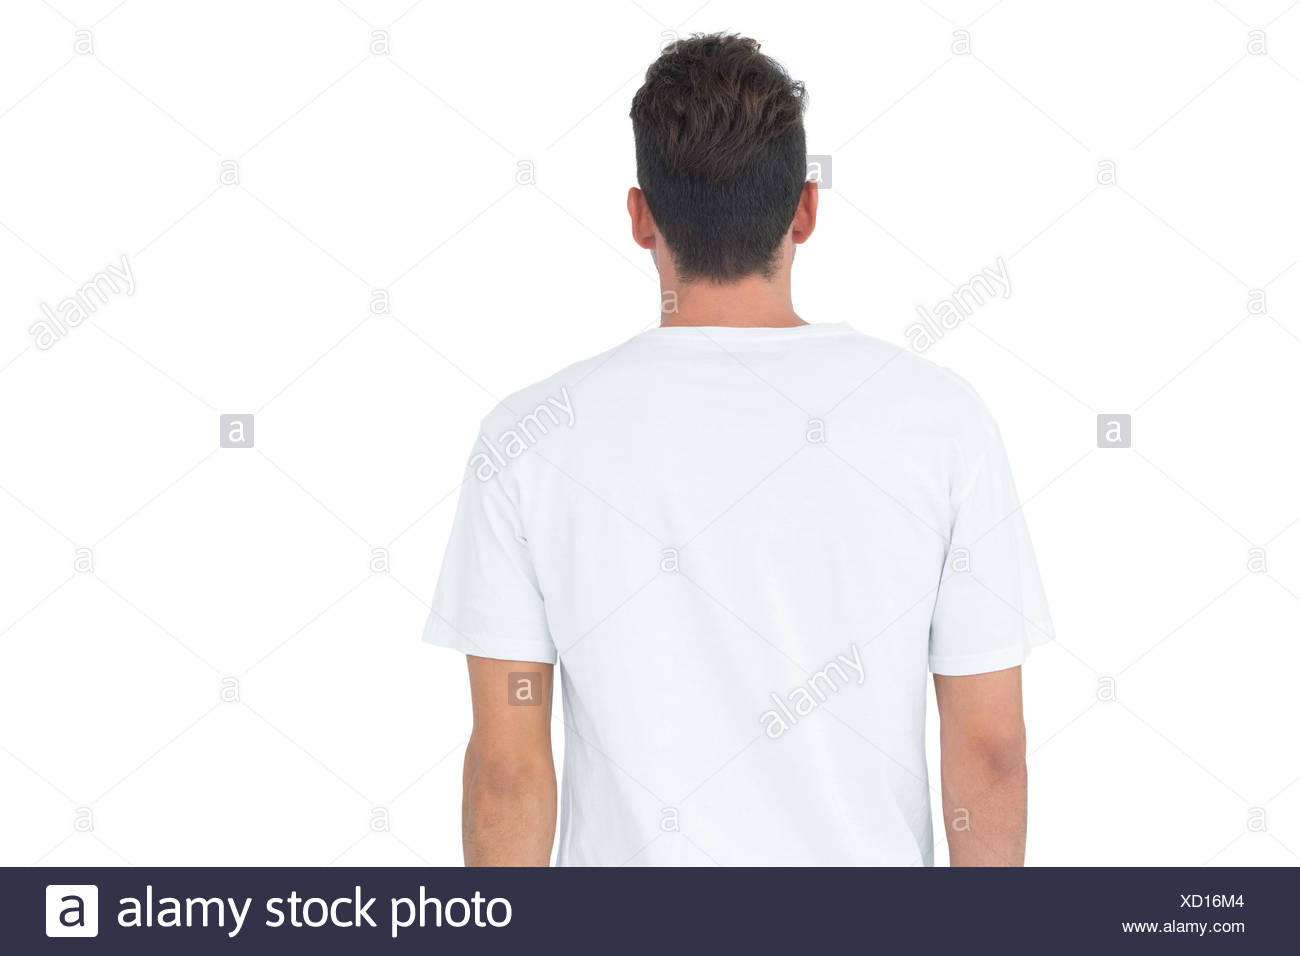 Rear view of a young man - Stock Image